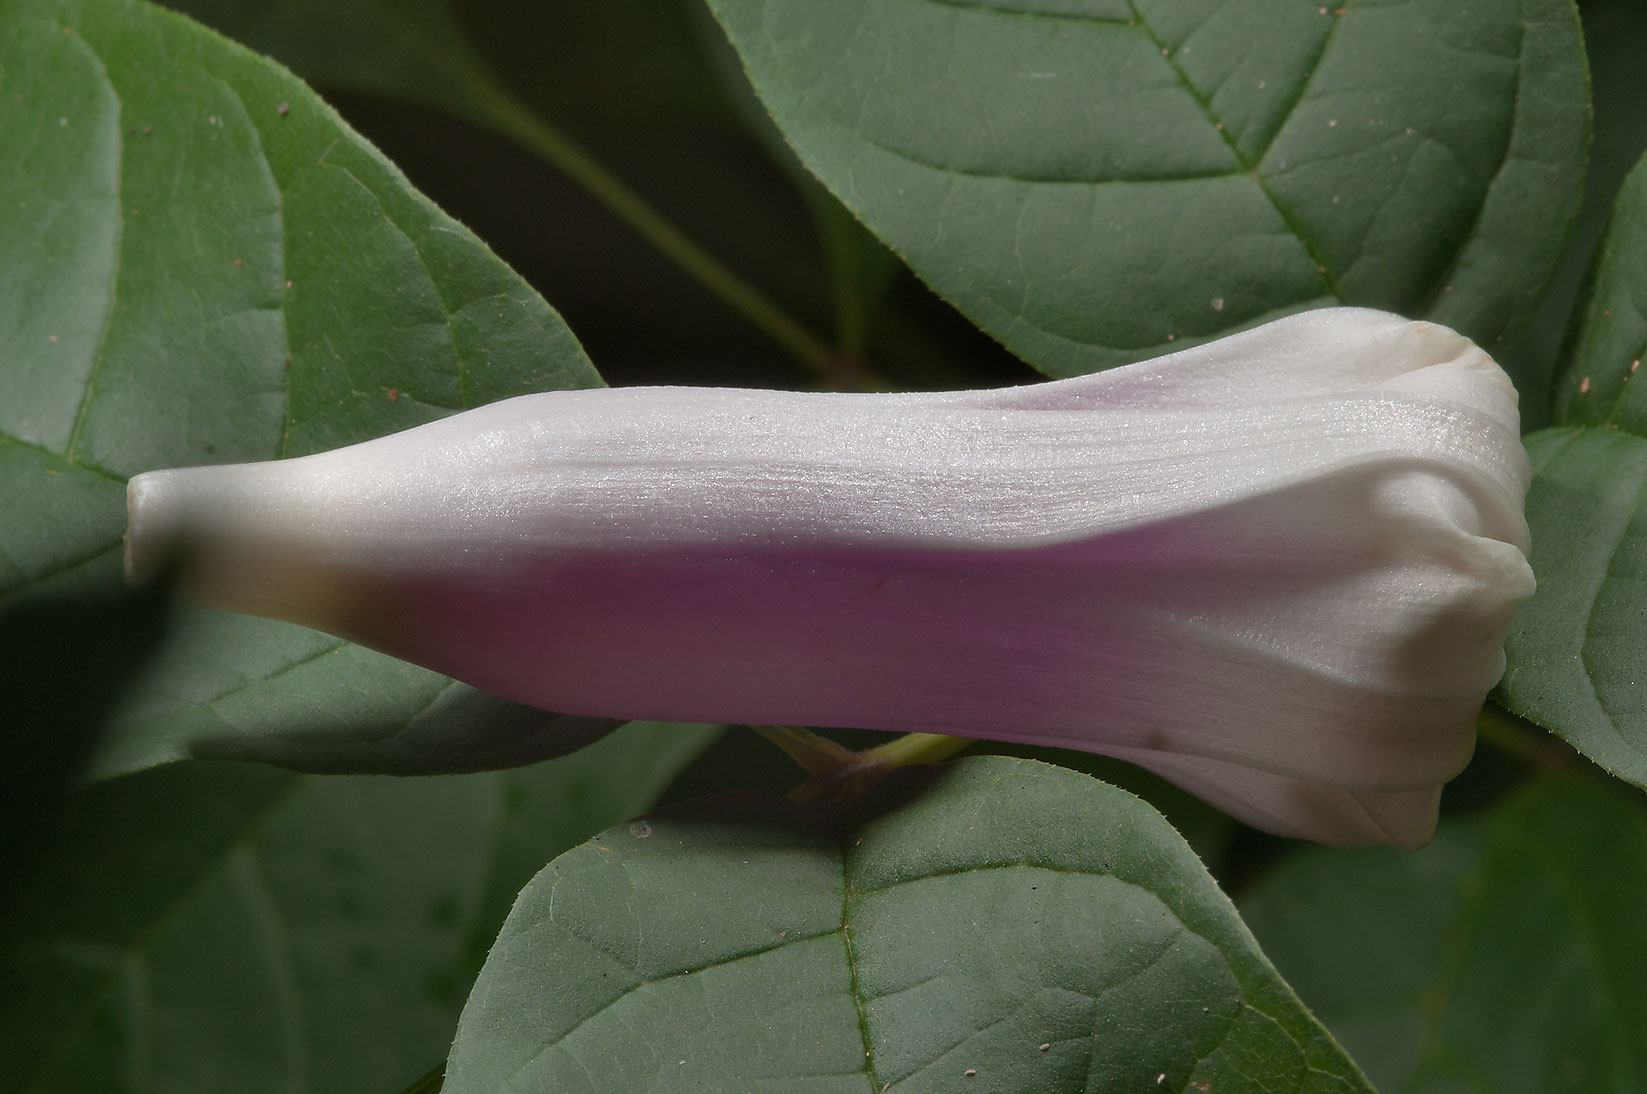 Petals of morning glory (Ipomoea) in Lick Creek Park. College Station, Texas